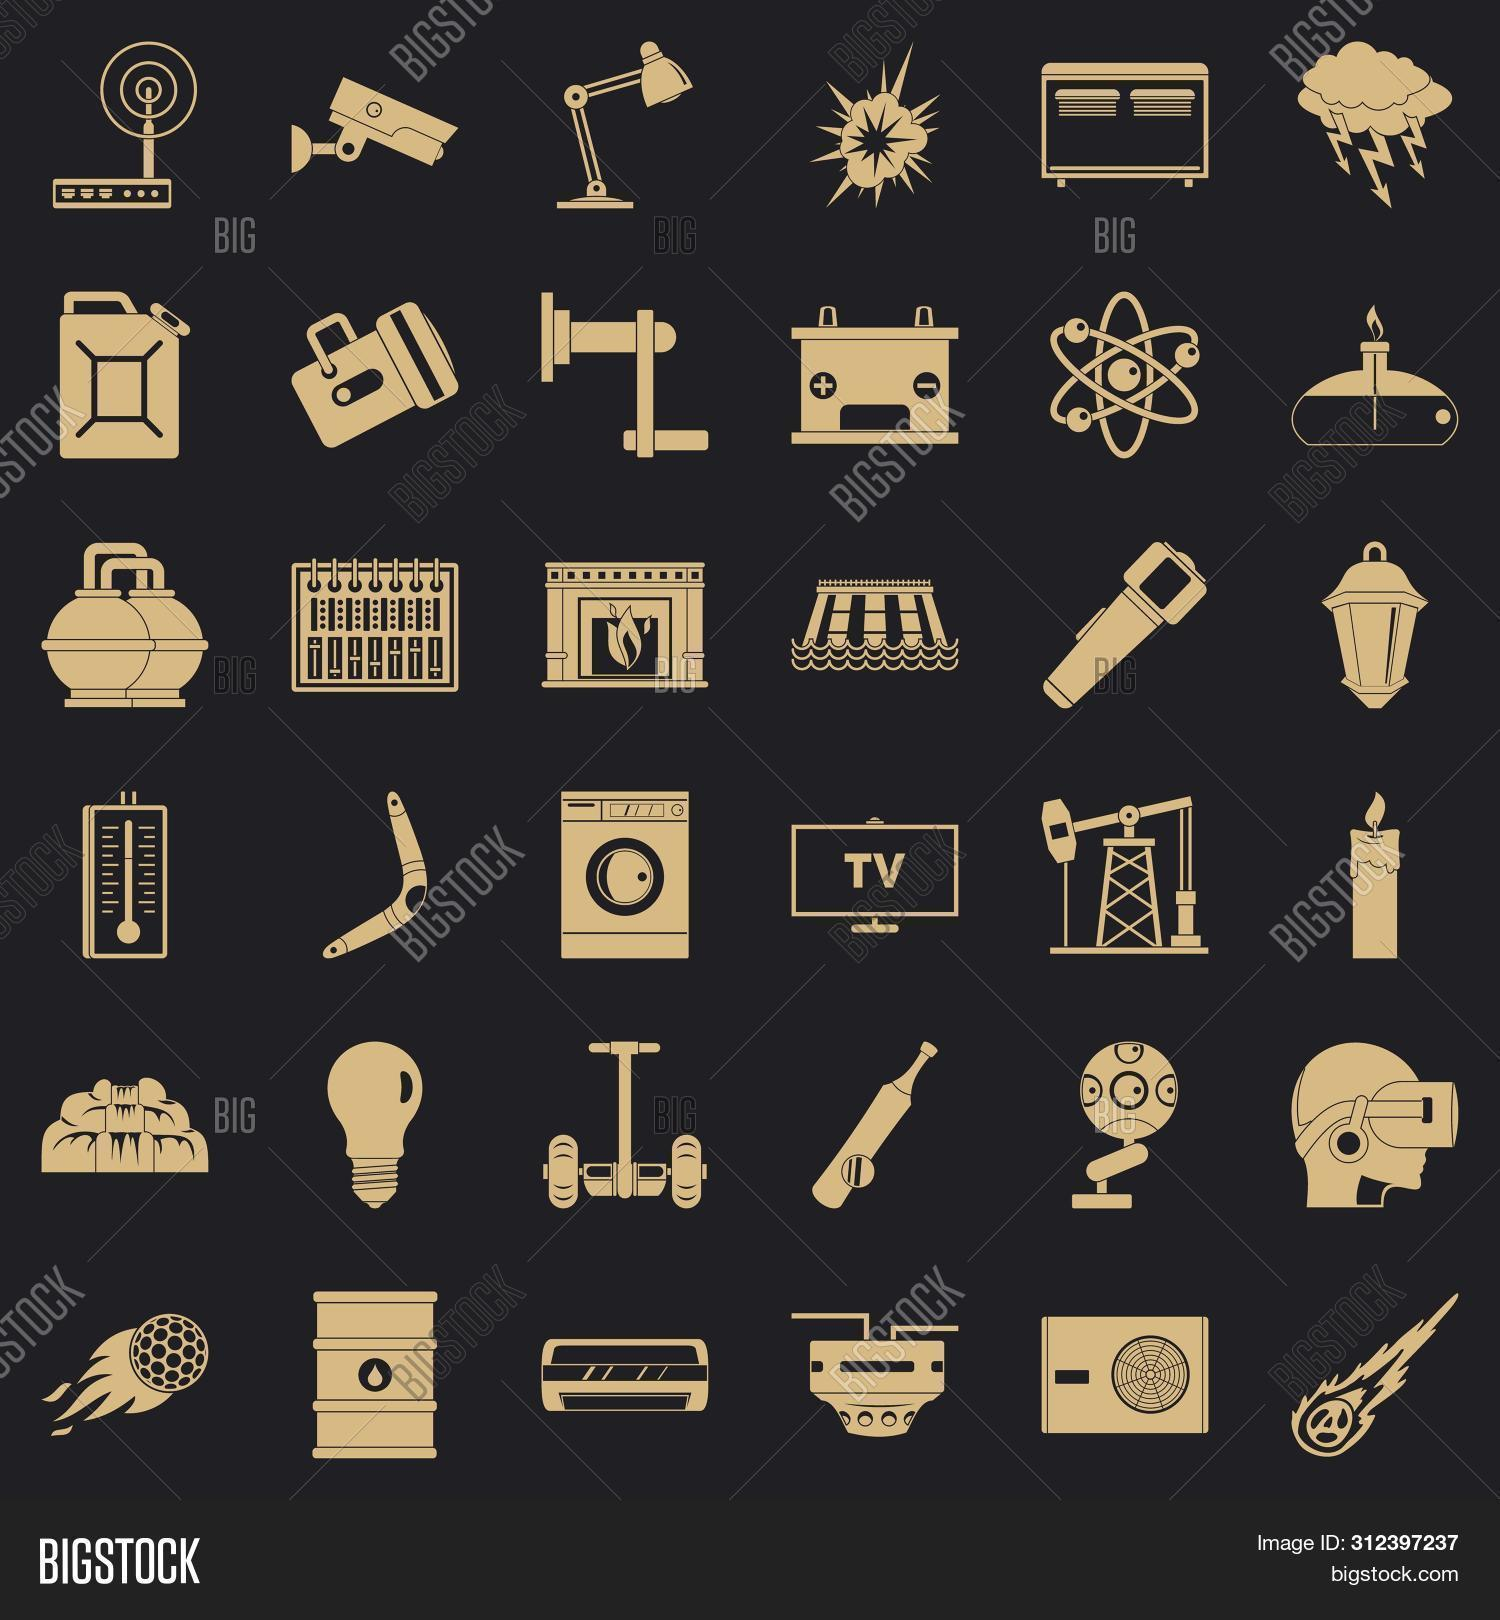 36,asteroid,atom,battery,beaker,black,camera,candle,canister,collection,computer,energy,equipment,fire,flame,flask,fly,head,house,icon,illustration,isolated,lamp,light,lightning,logo,machine,mask,molecule,monitor,object,oil,power,radio,saving,screen,set,sign,simple,symbol,tv,use,useful,vr,wash,washing,water,wheel